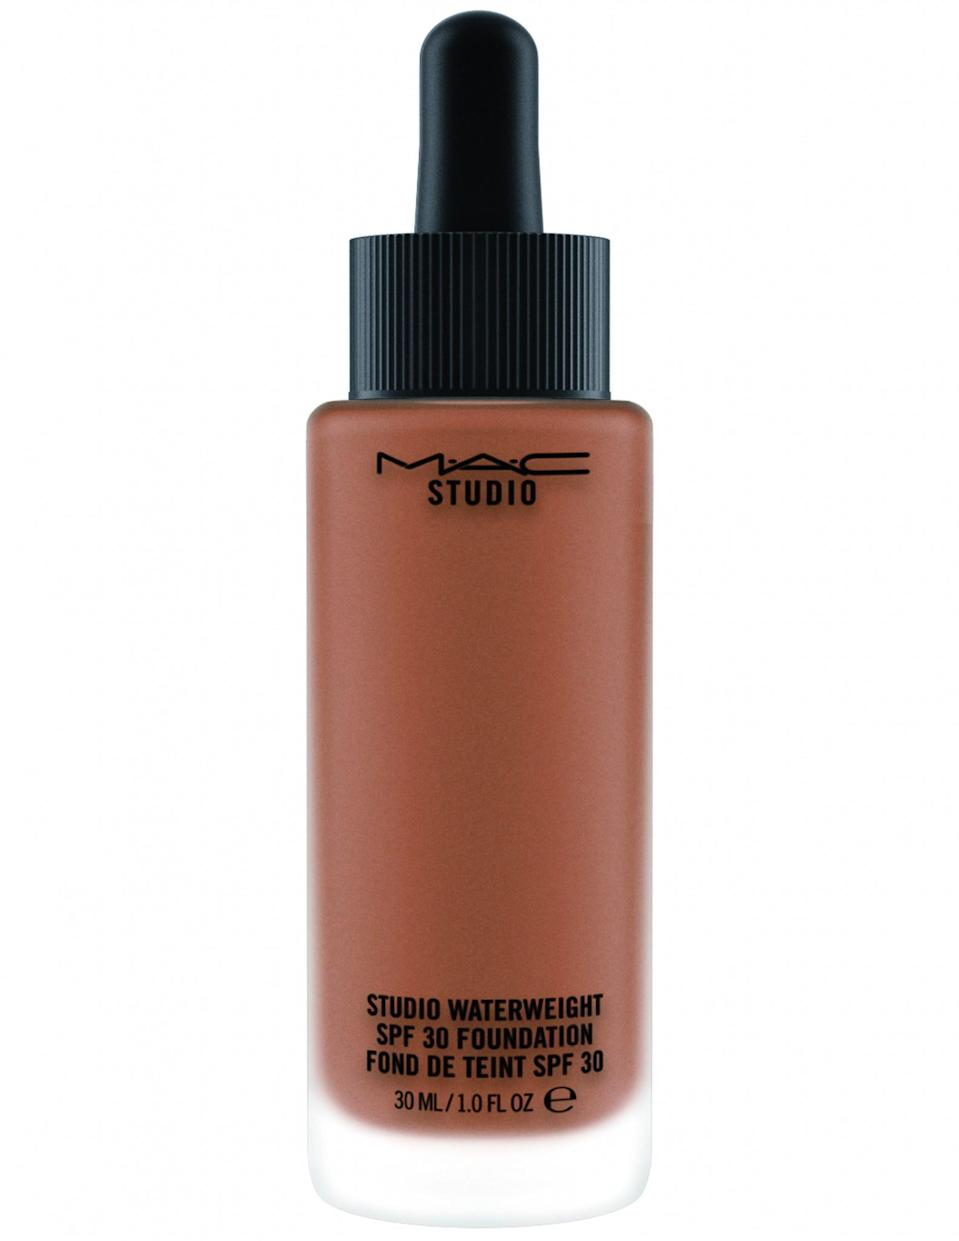 """<p>As one of the a few pioneers in getting foundation shades right for deeper complexions from the beginning, MAC Cosmetics it at again with this feather-light foundation, available in a variety of rich hues. This double-duty formulation offers just the right amount of coverage while also delivering a decent amount of protection from harmful UV rays. $34, <a rel=""""nofollow noopener"""" href=""""http://www.maccosmetics.com/product/13847/37094/Products/Makeup/Face/Foundation/Studio-Waterweight-SPF-30-Foundation"""" target=""""_blank"""" data-ylk=""""slk:MACCosmetics.com"""" class=""""link rapid-noclick-resp"""">MACCosmetics.com</a>. </p>"""